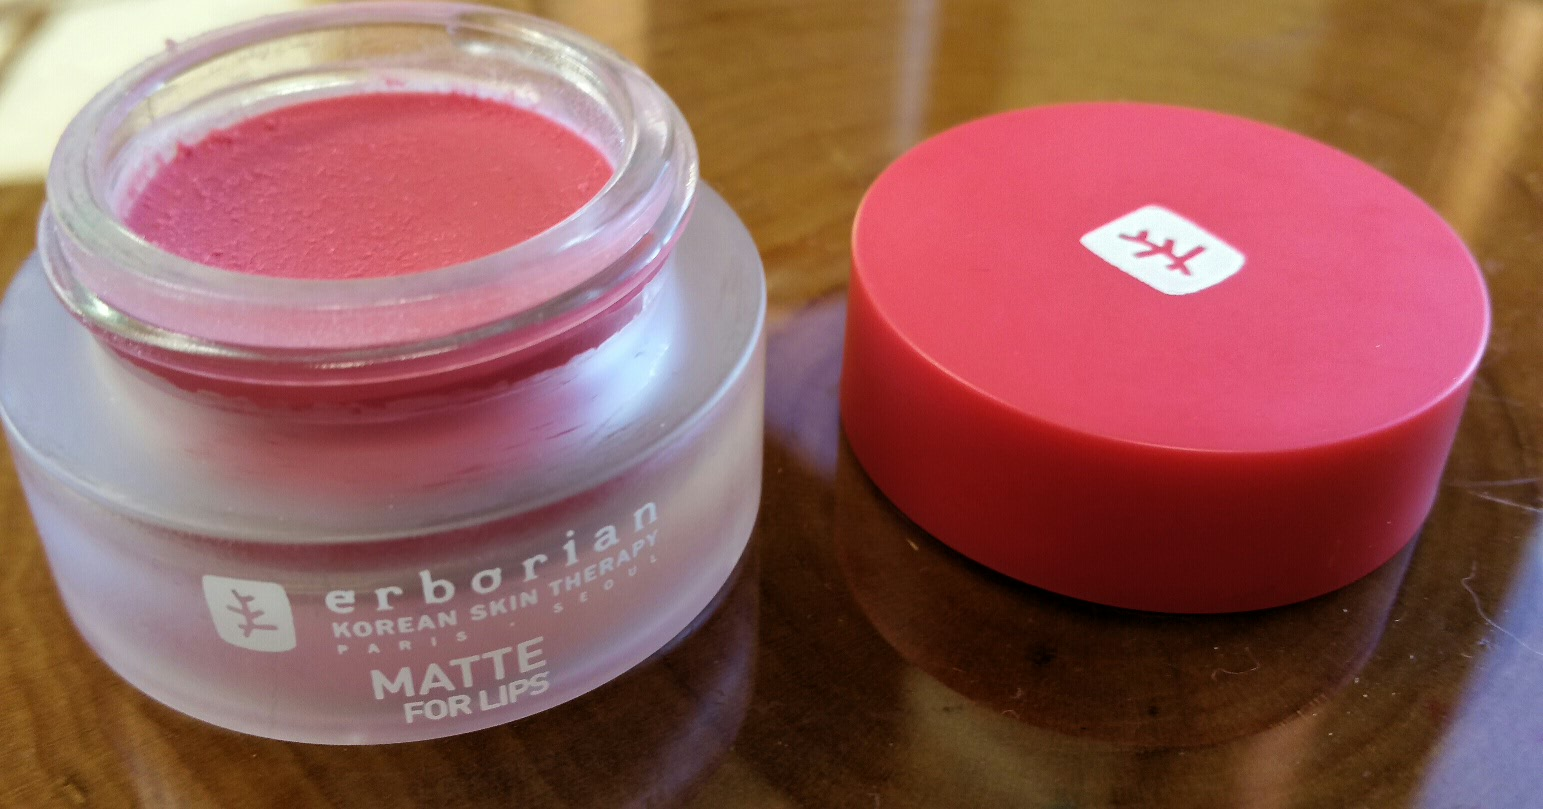 erborian matte for lips review